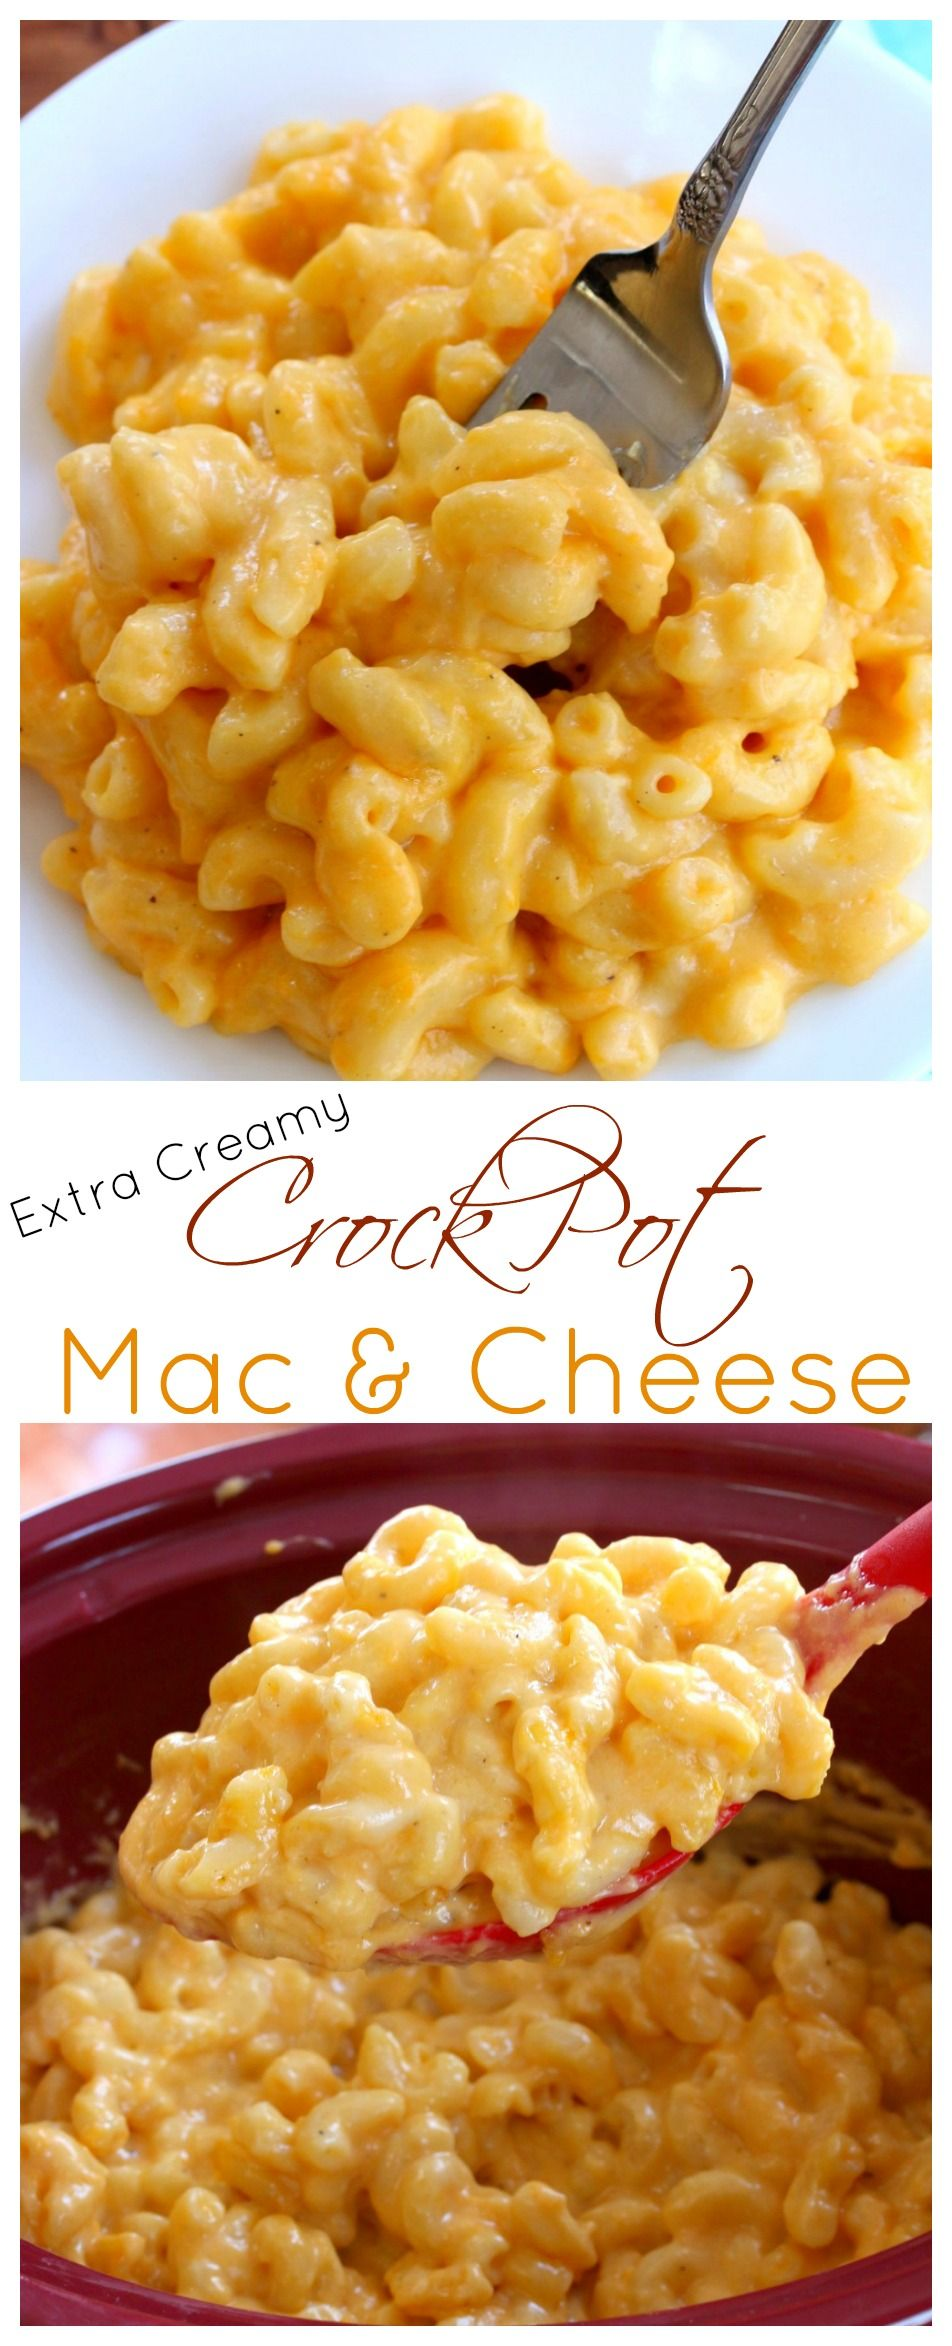 This extra creamy crock pot mac and cheese is easy to make & a universal crowd-pleaser! It takes minutes to prepare and the crock pot does the rest.